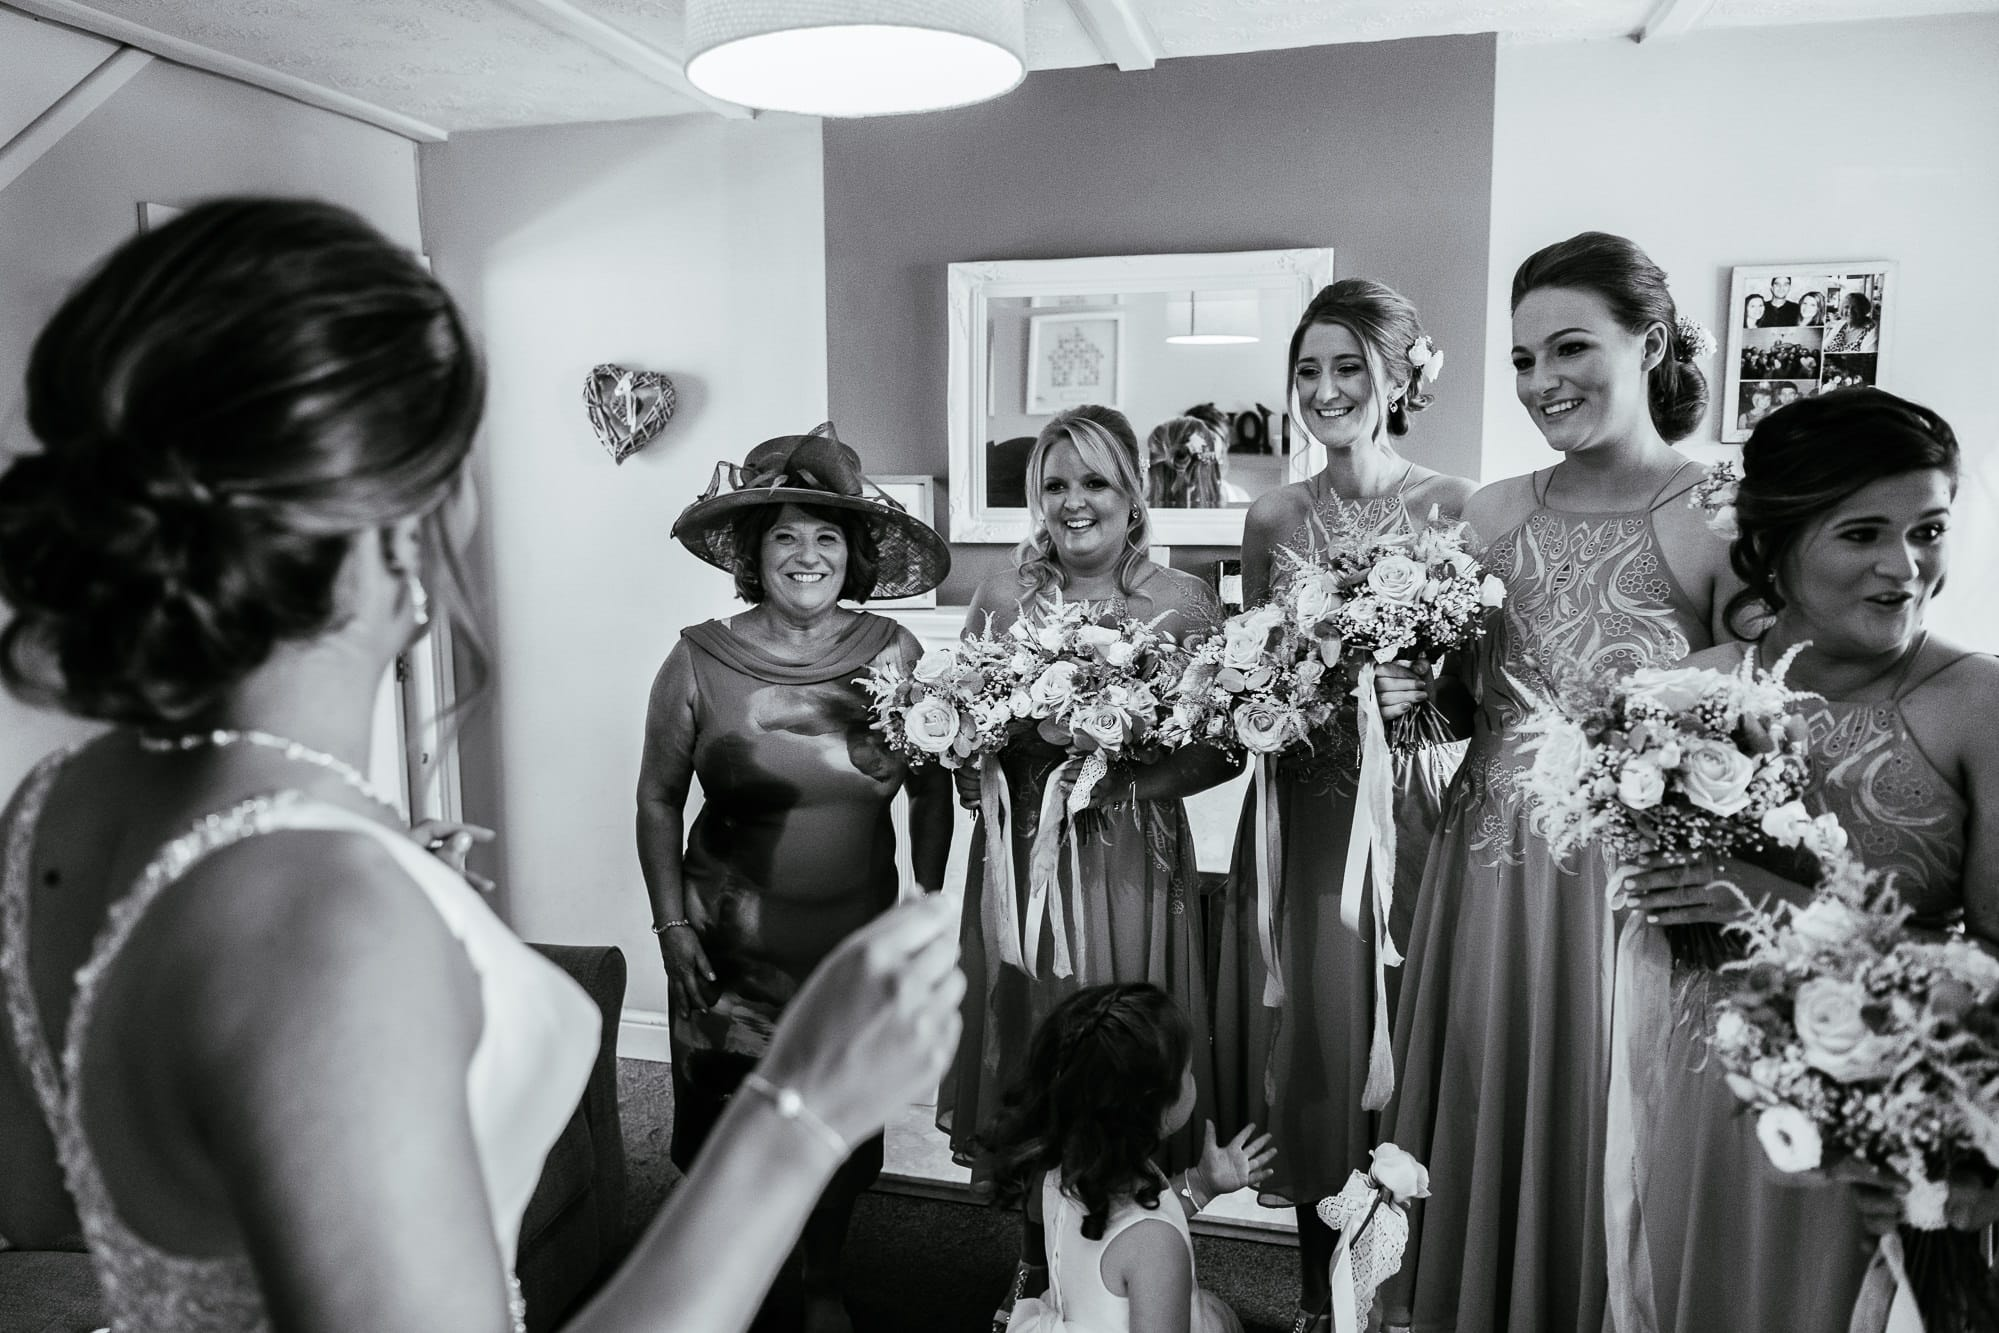 Bride seeing the bridesmaids for the first time